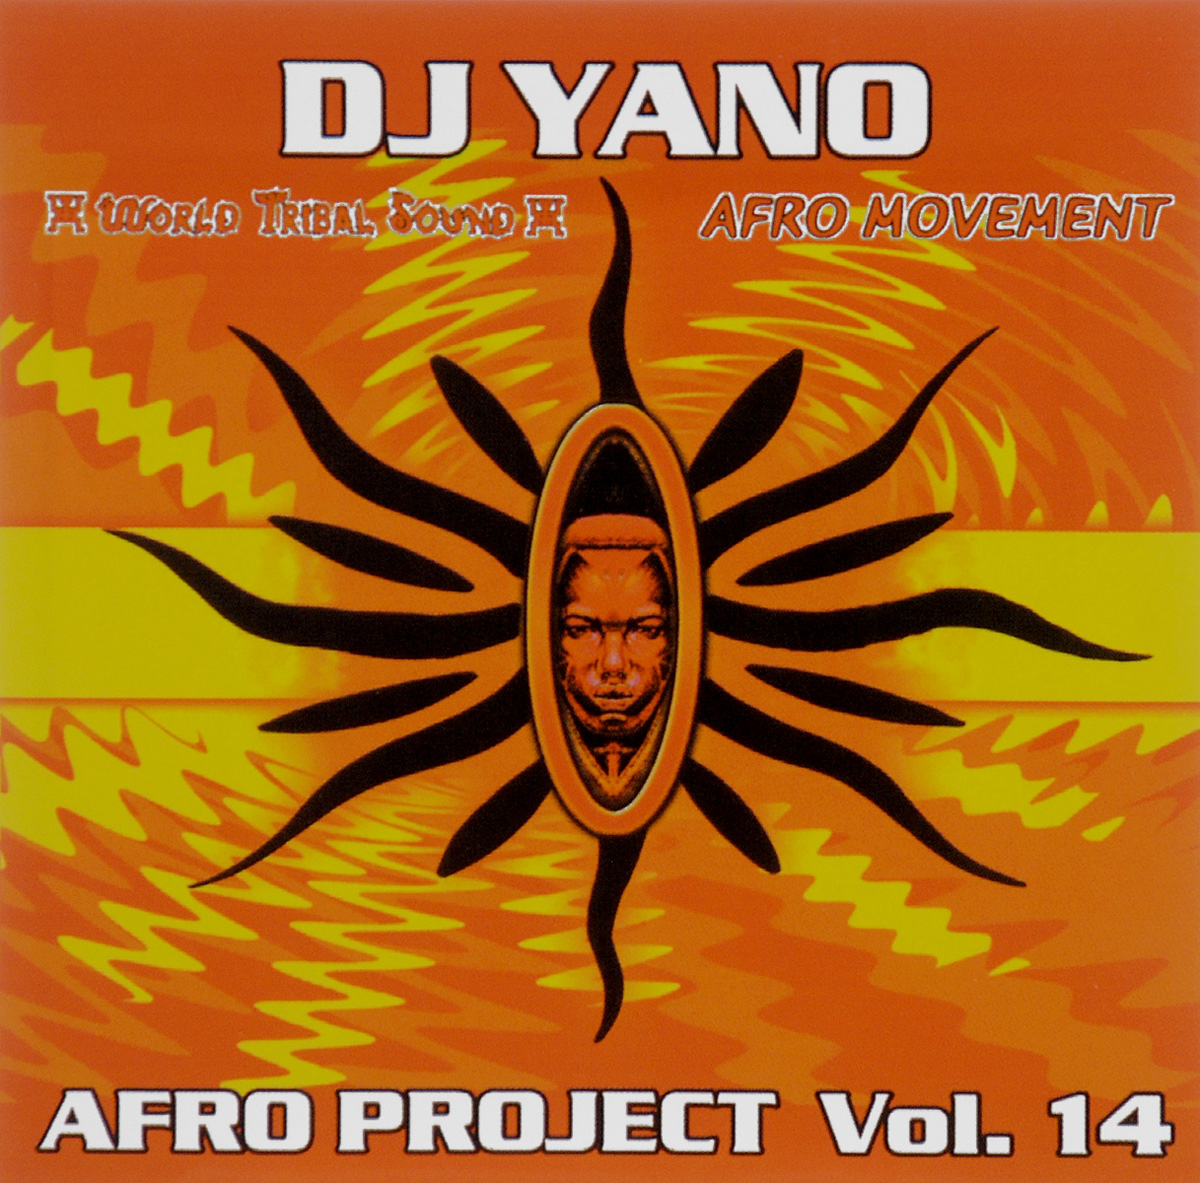 Dj Yano Dj Yano. Afro Project. Vol. 14 dj yano dj yano afro project vol 24 special limited edition cd dvd